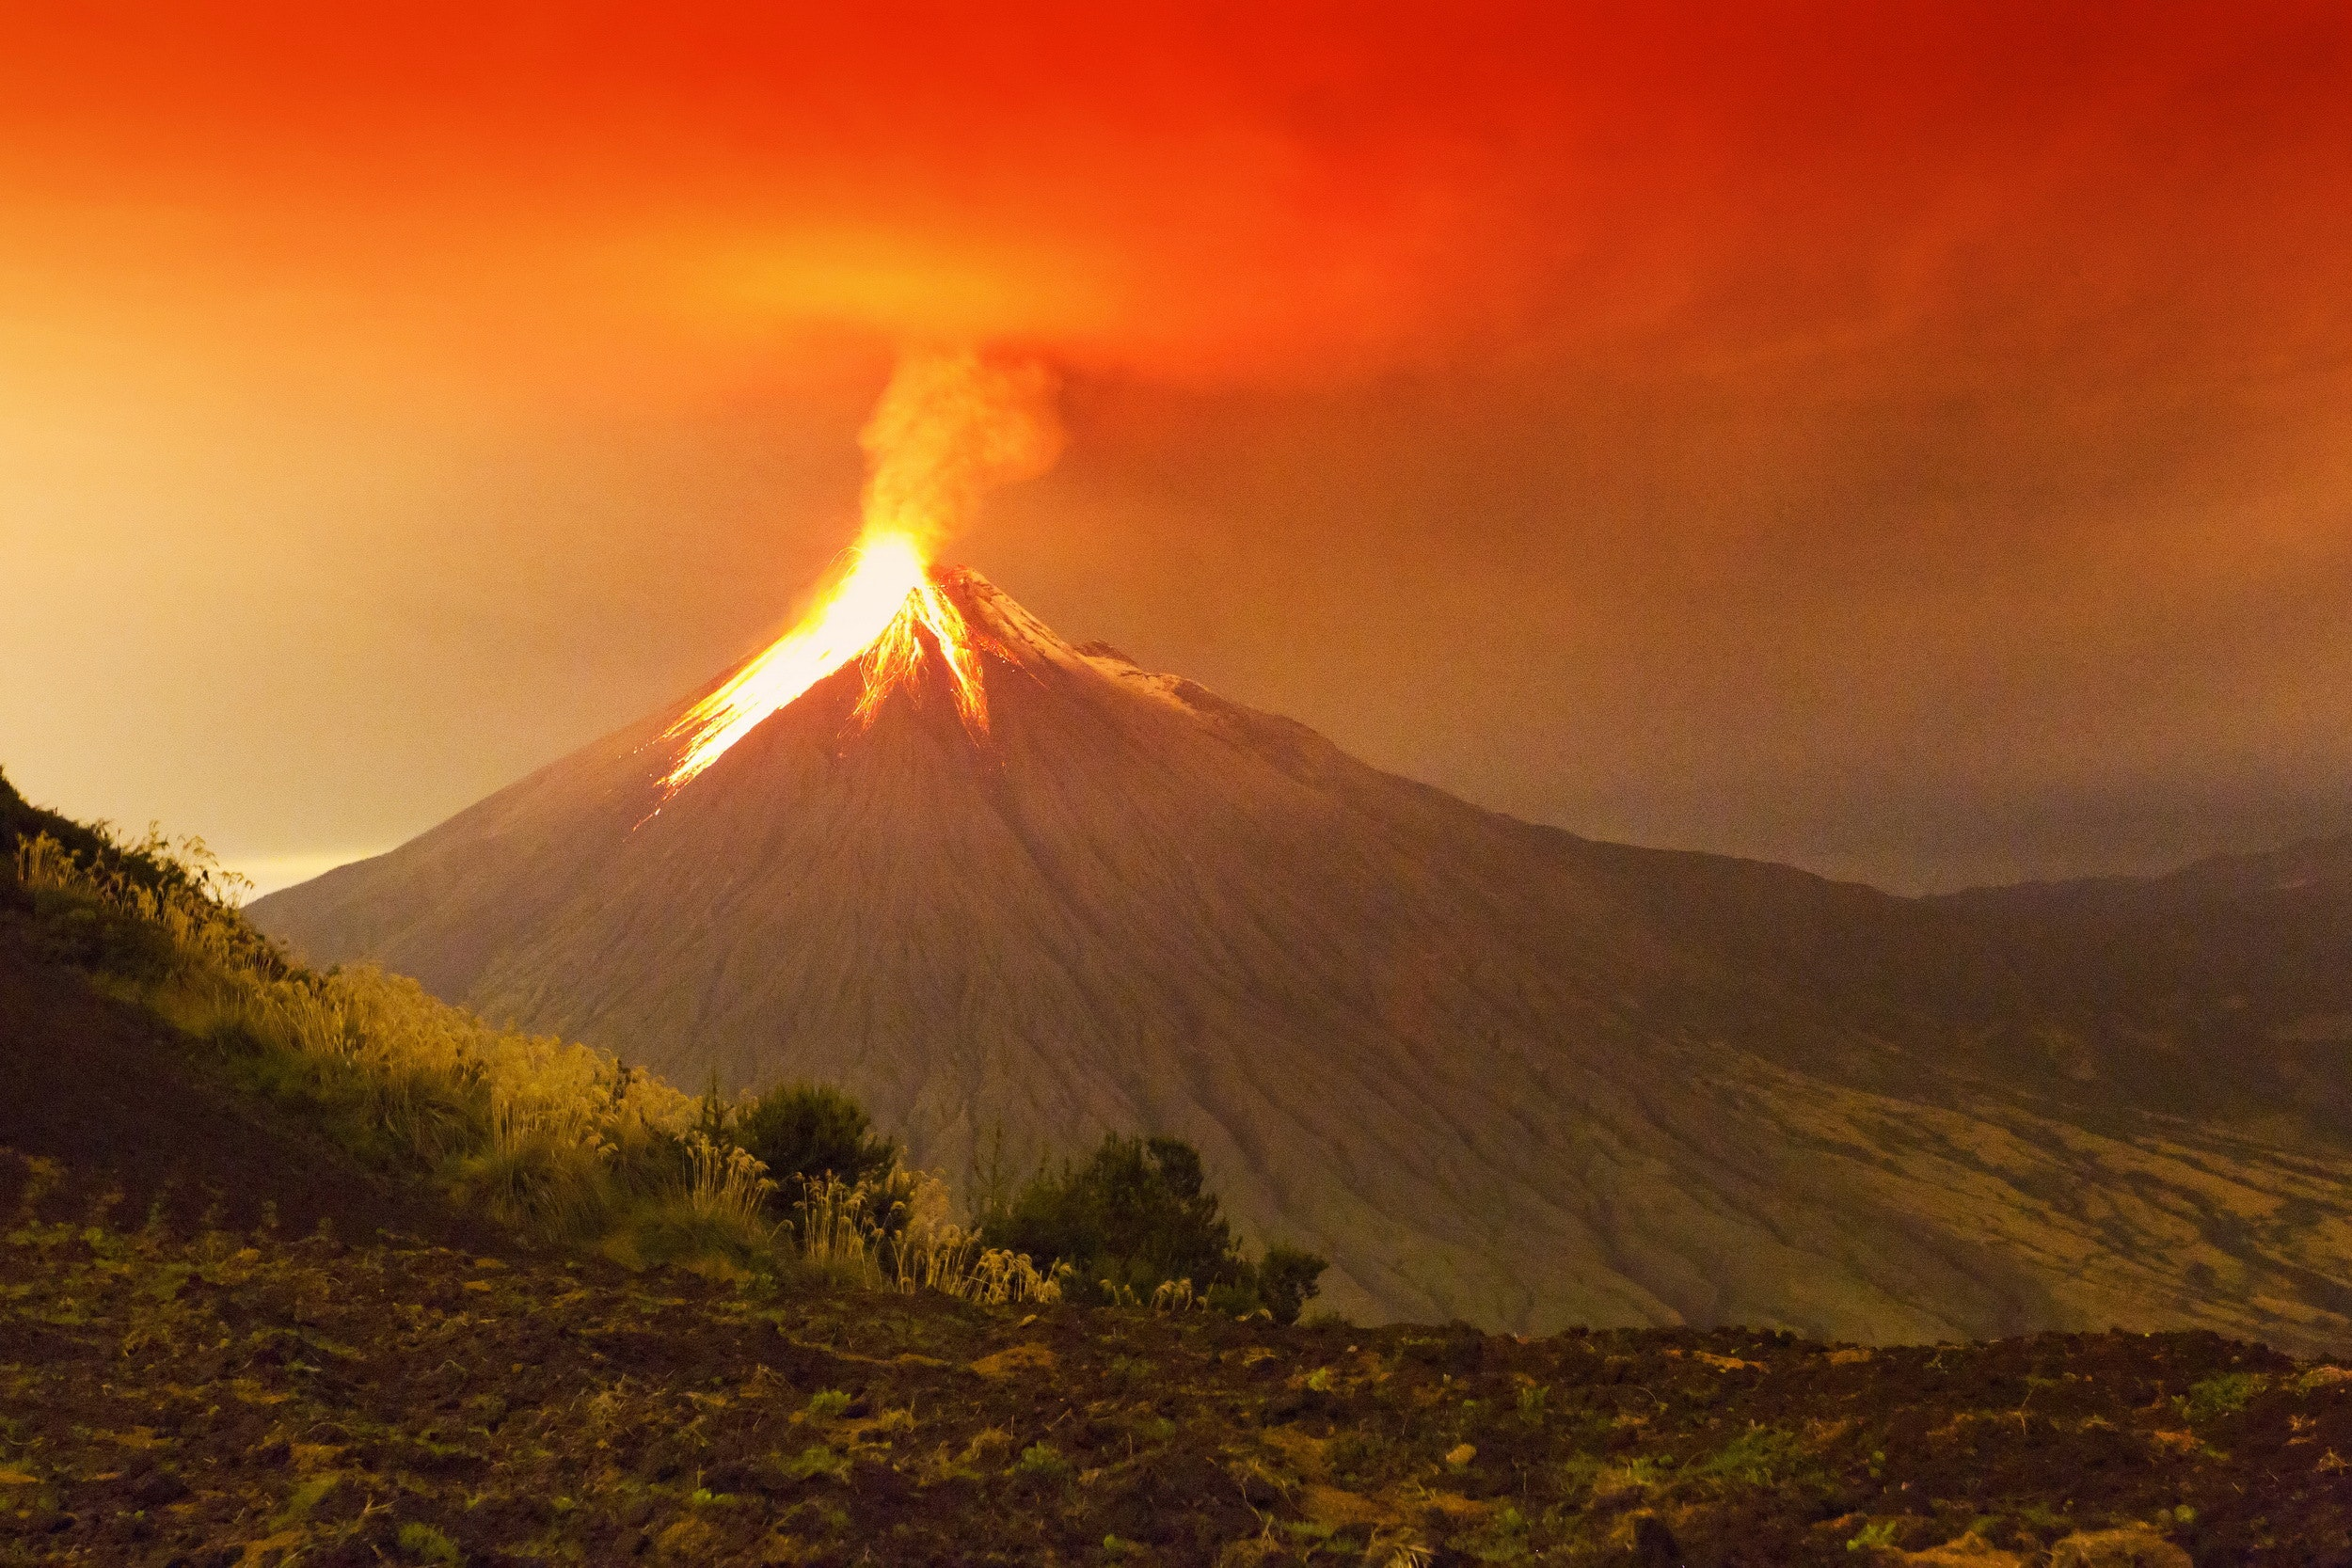 Curious Kids: Why do volcanoes erupt?